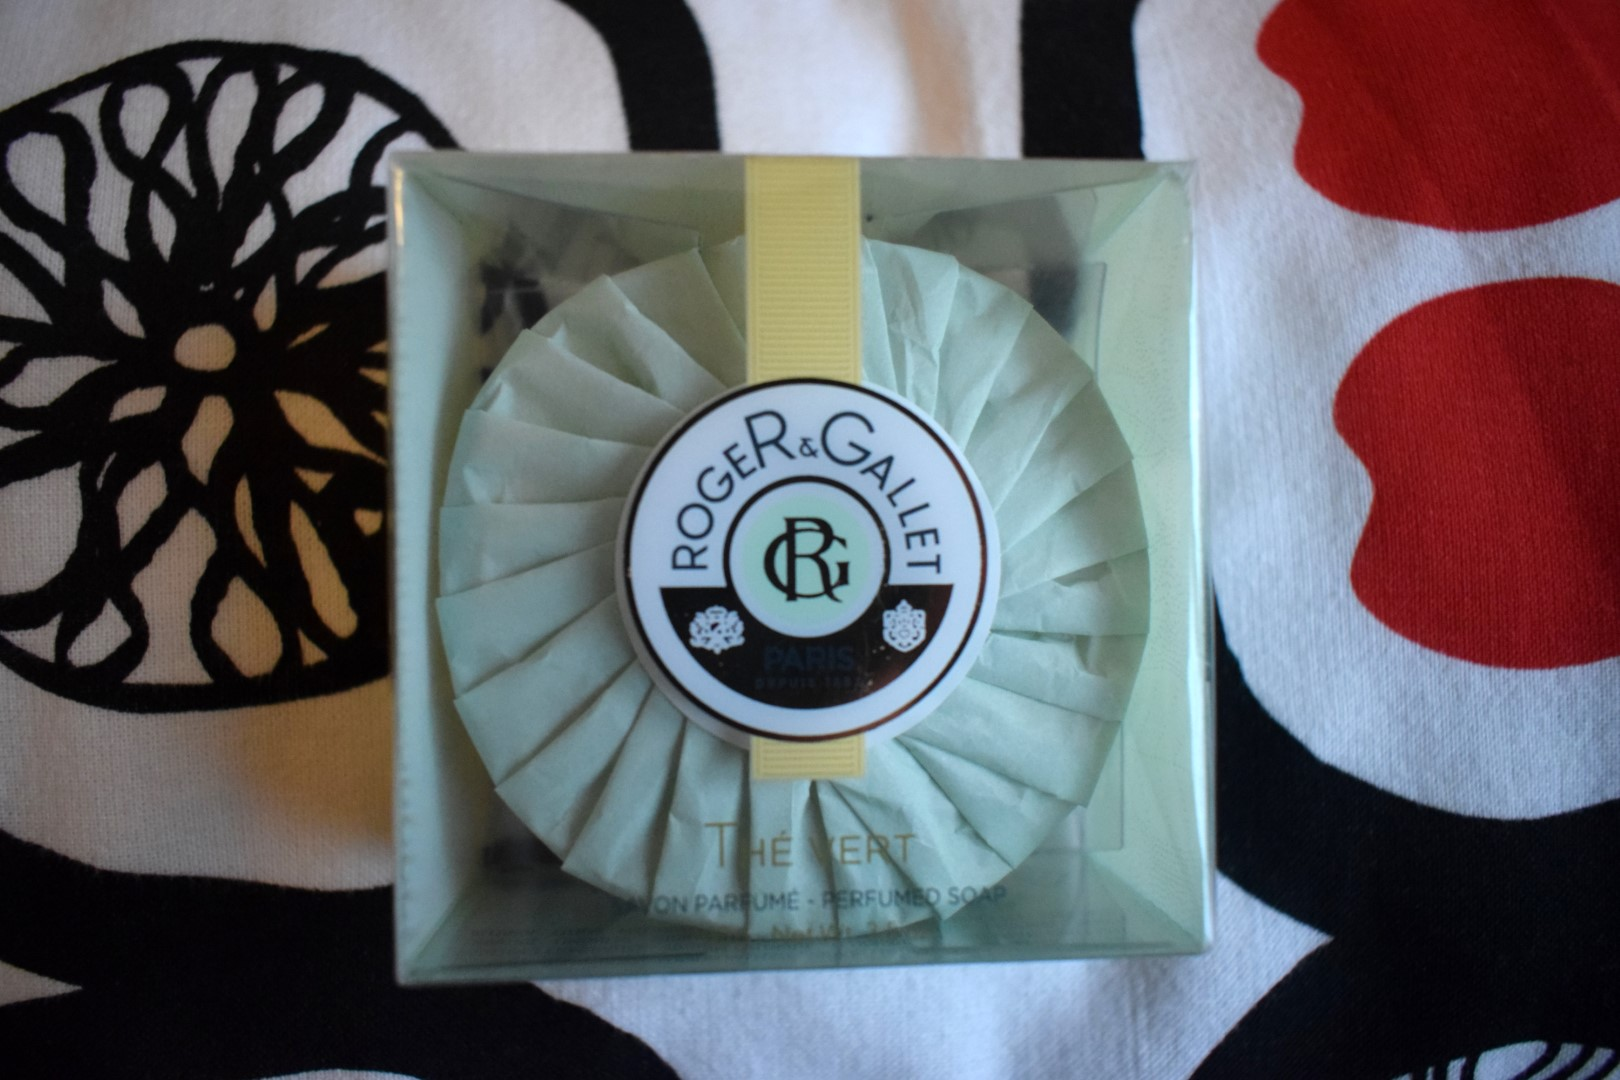 Roger & Gallet soap bar